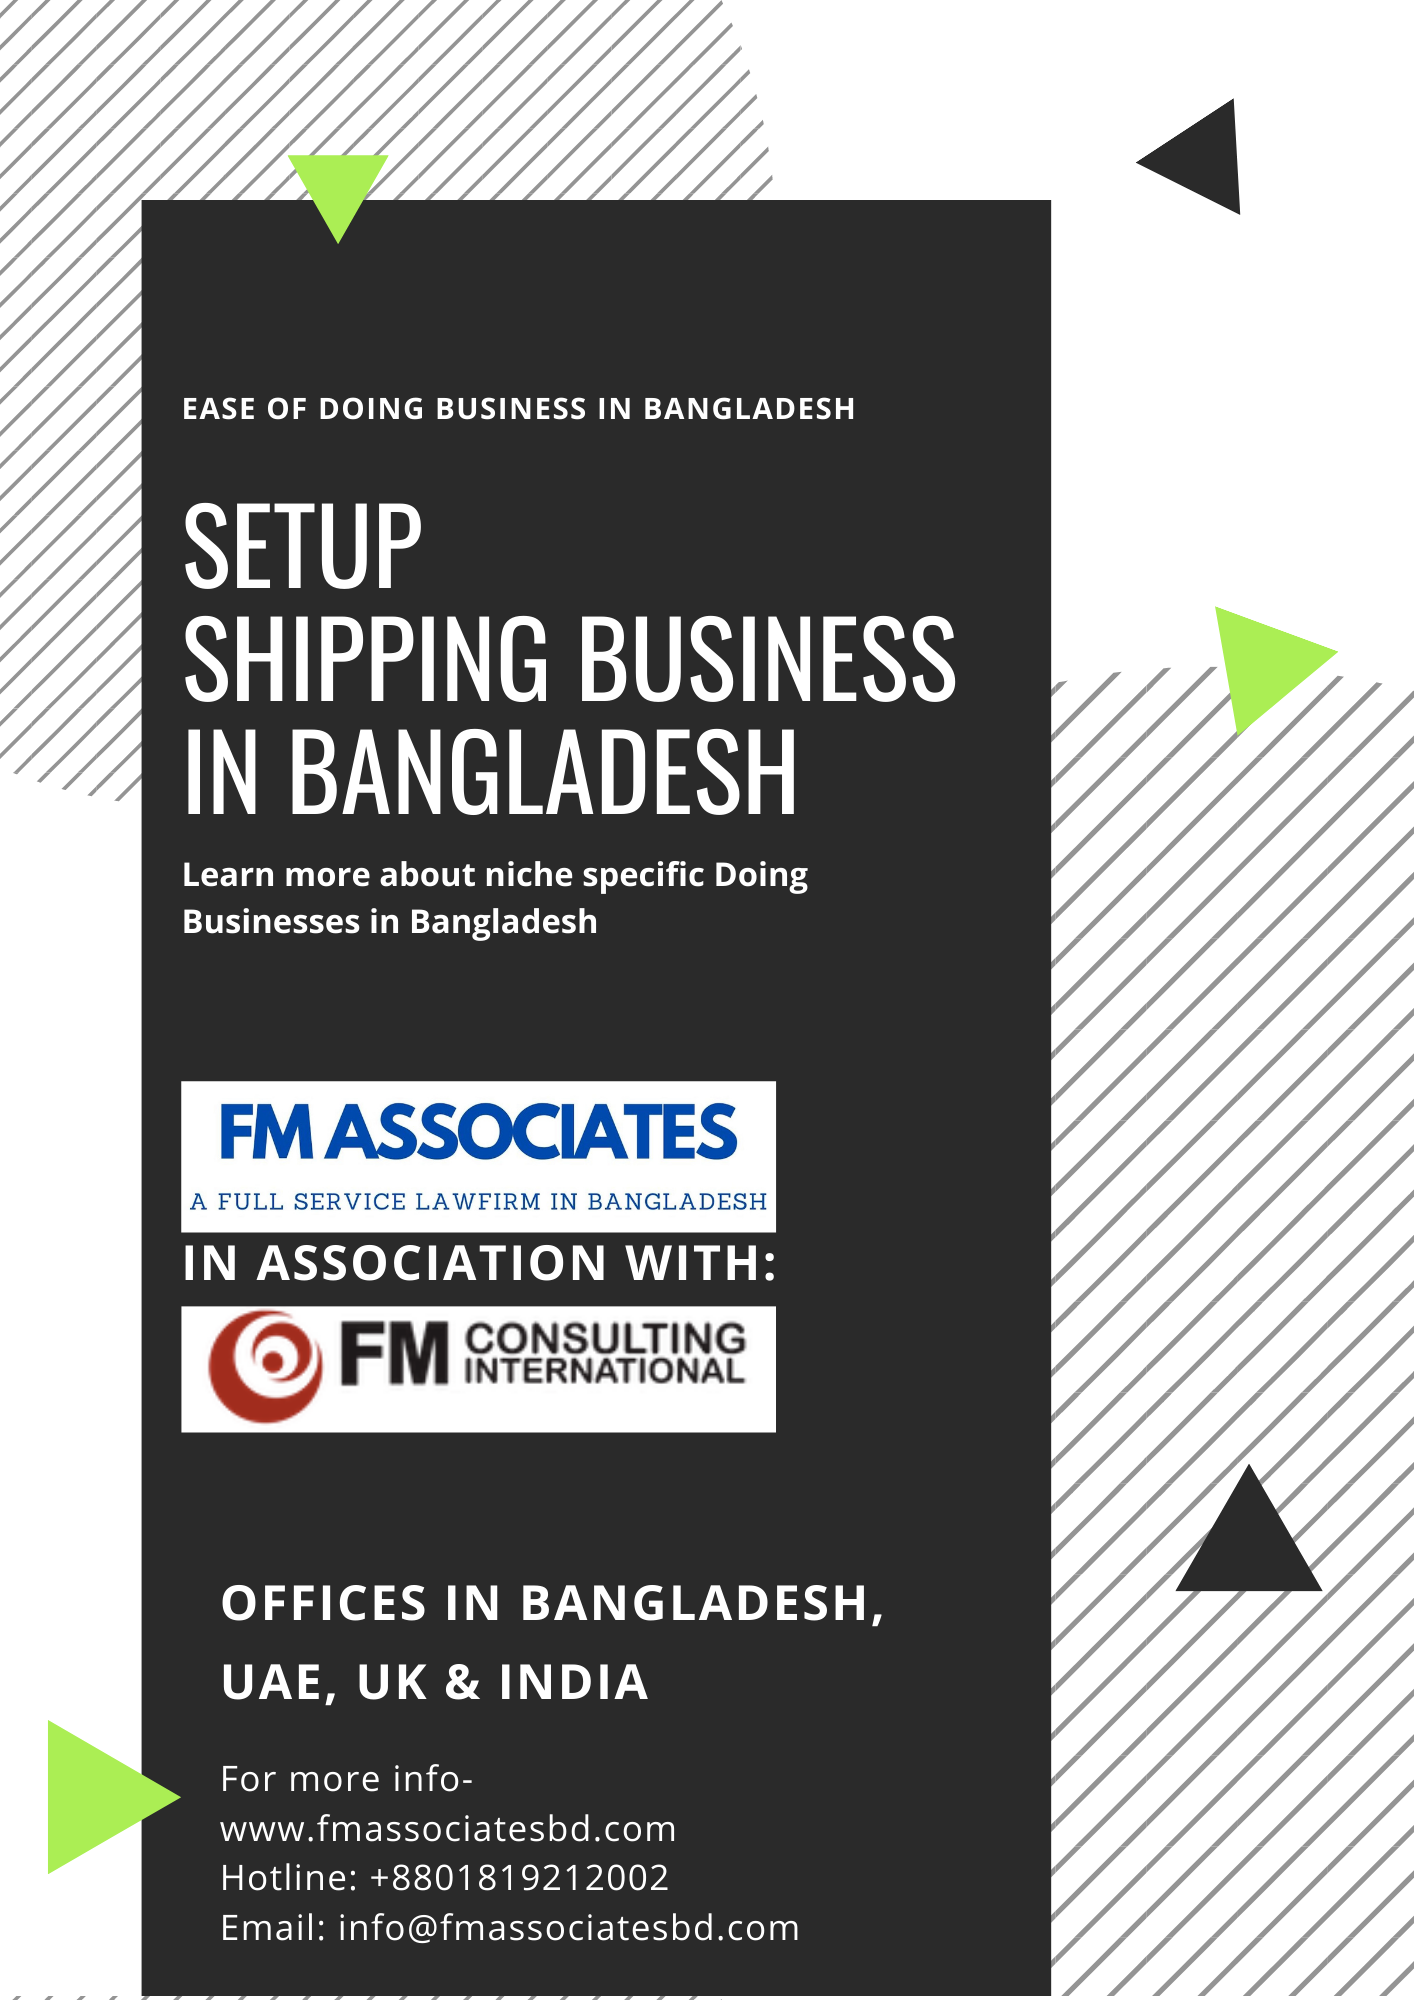 How to Setup Shipping Business in Bangladesh